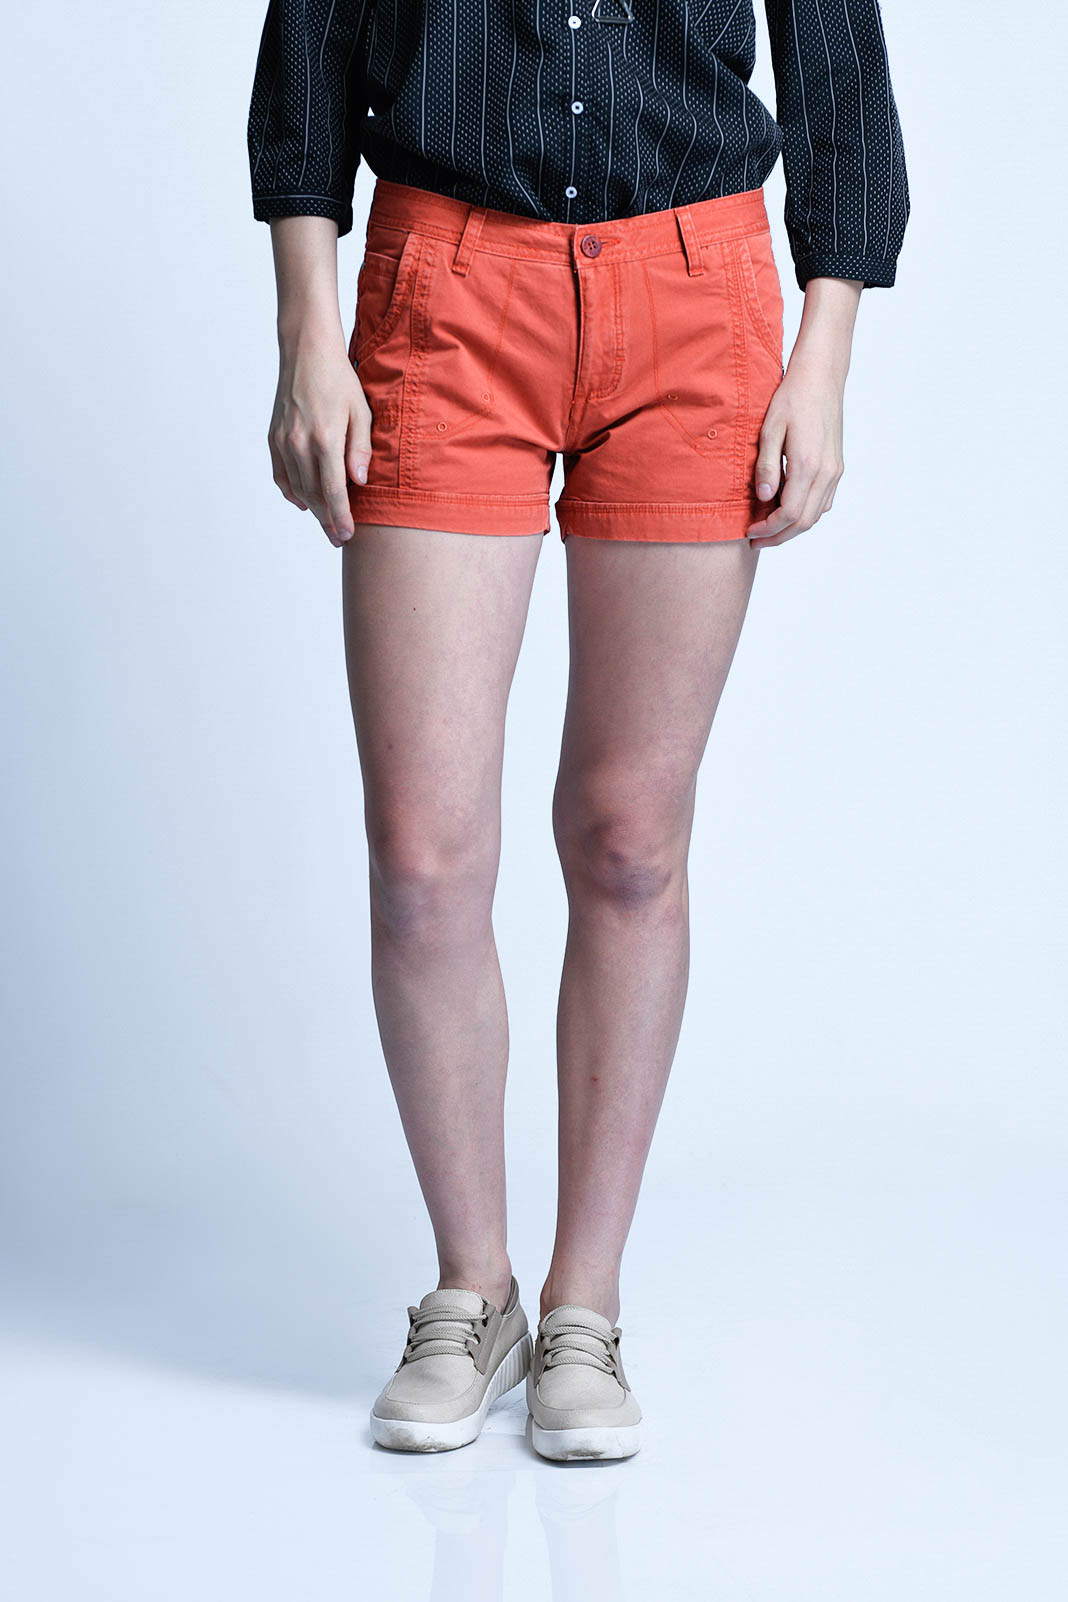 CARDINAL GIRL HOT PANTS 2 (ORANGE)